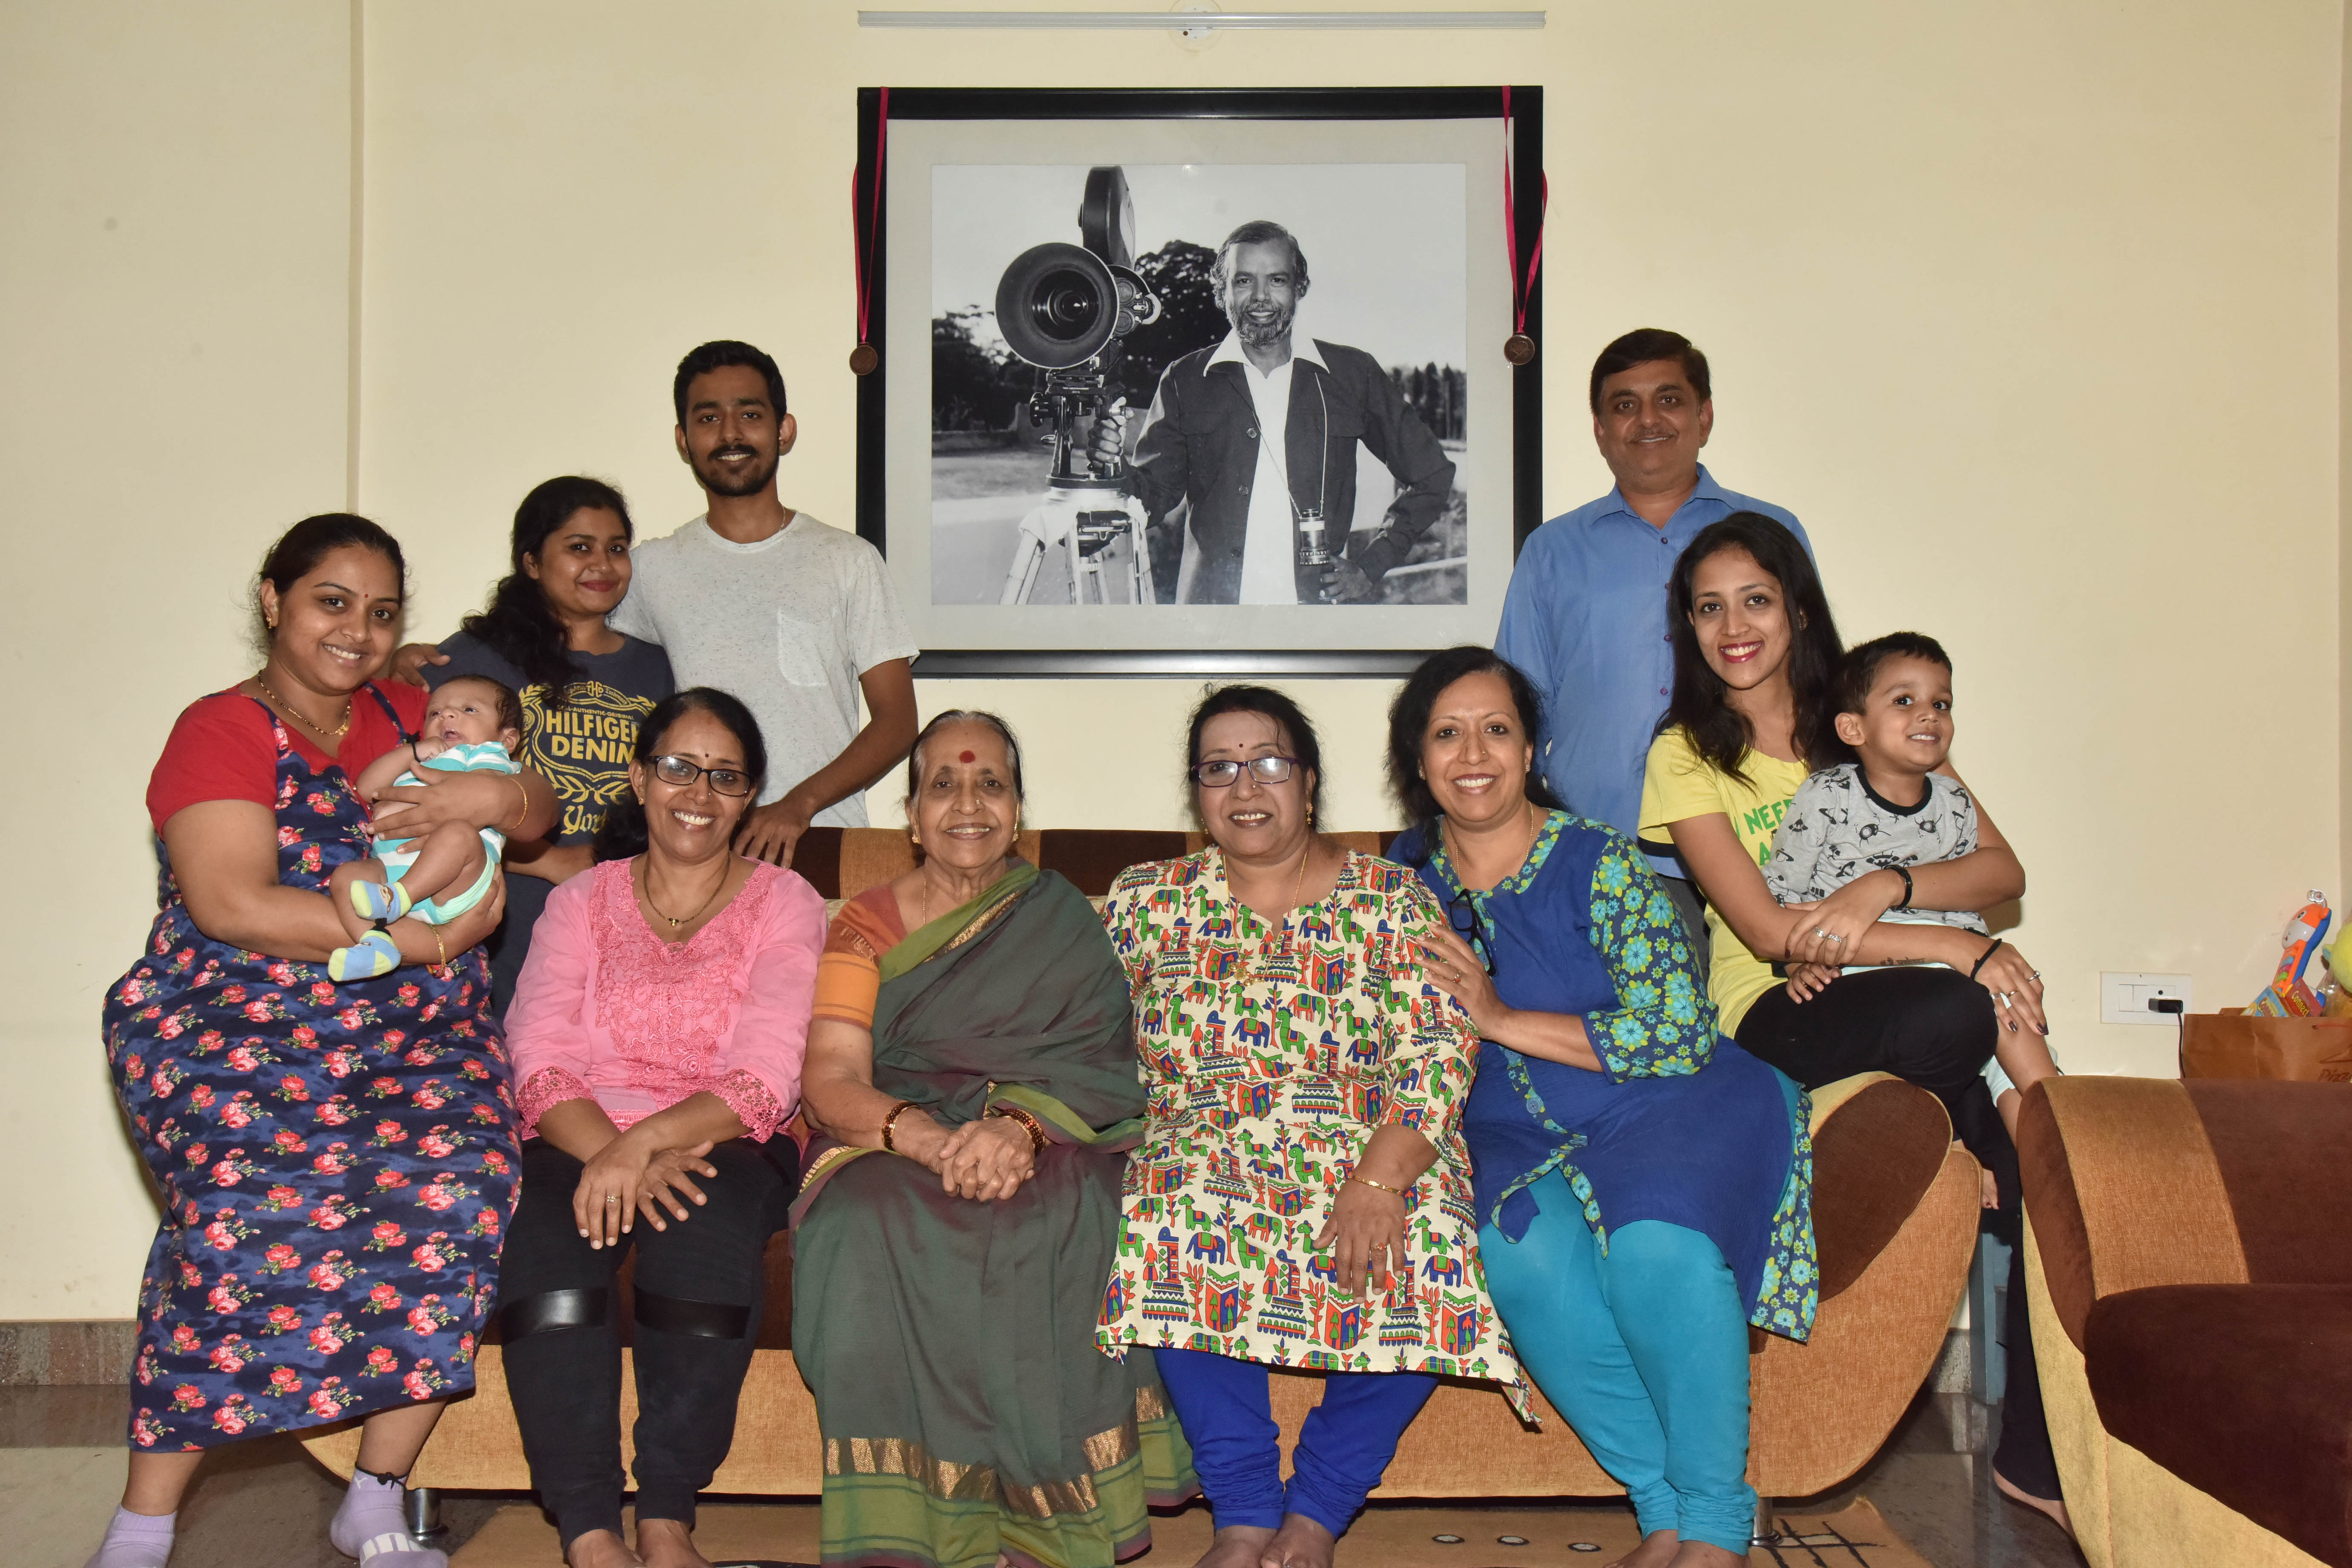 On Metrolife's suggestion, the iconic director's extended family meets and recalls his life and times